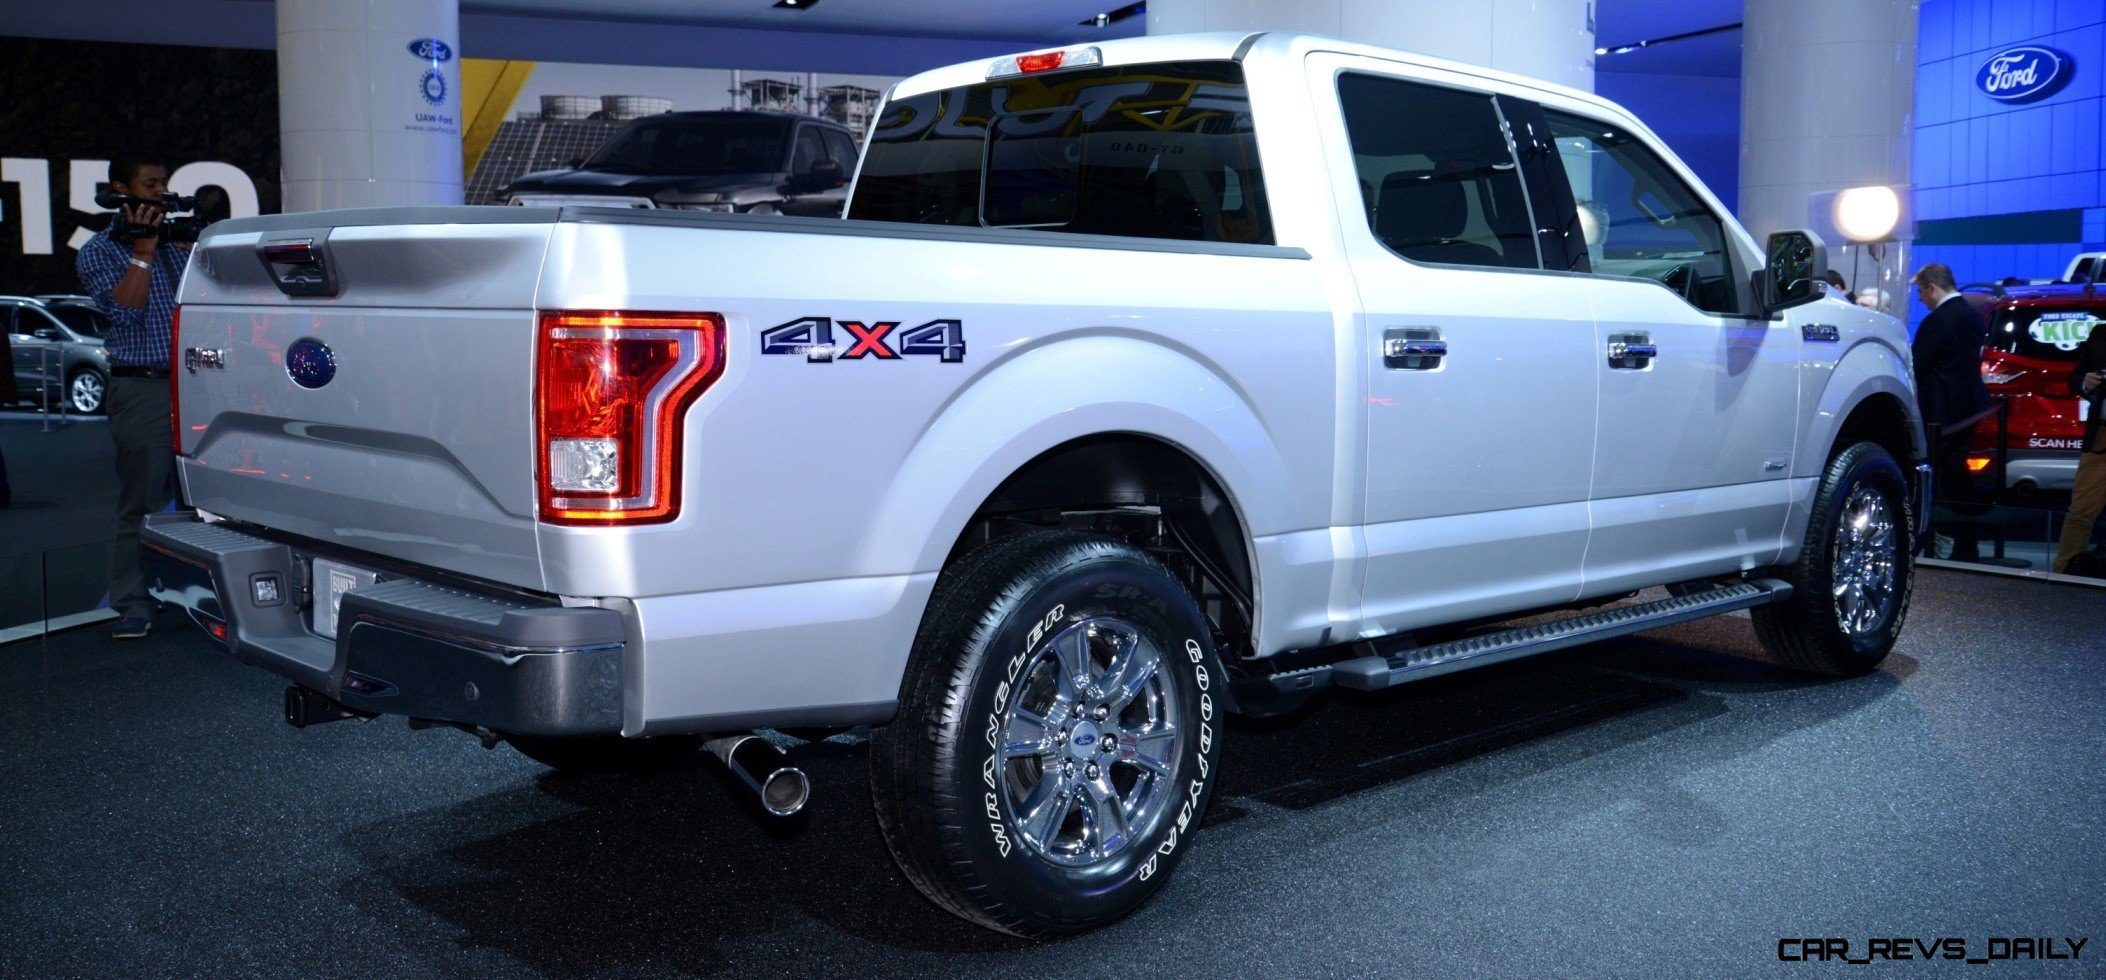 2015 FORD F-150 Almost Unbelieveably New - $14B Golden Goose 18